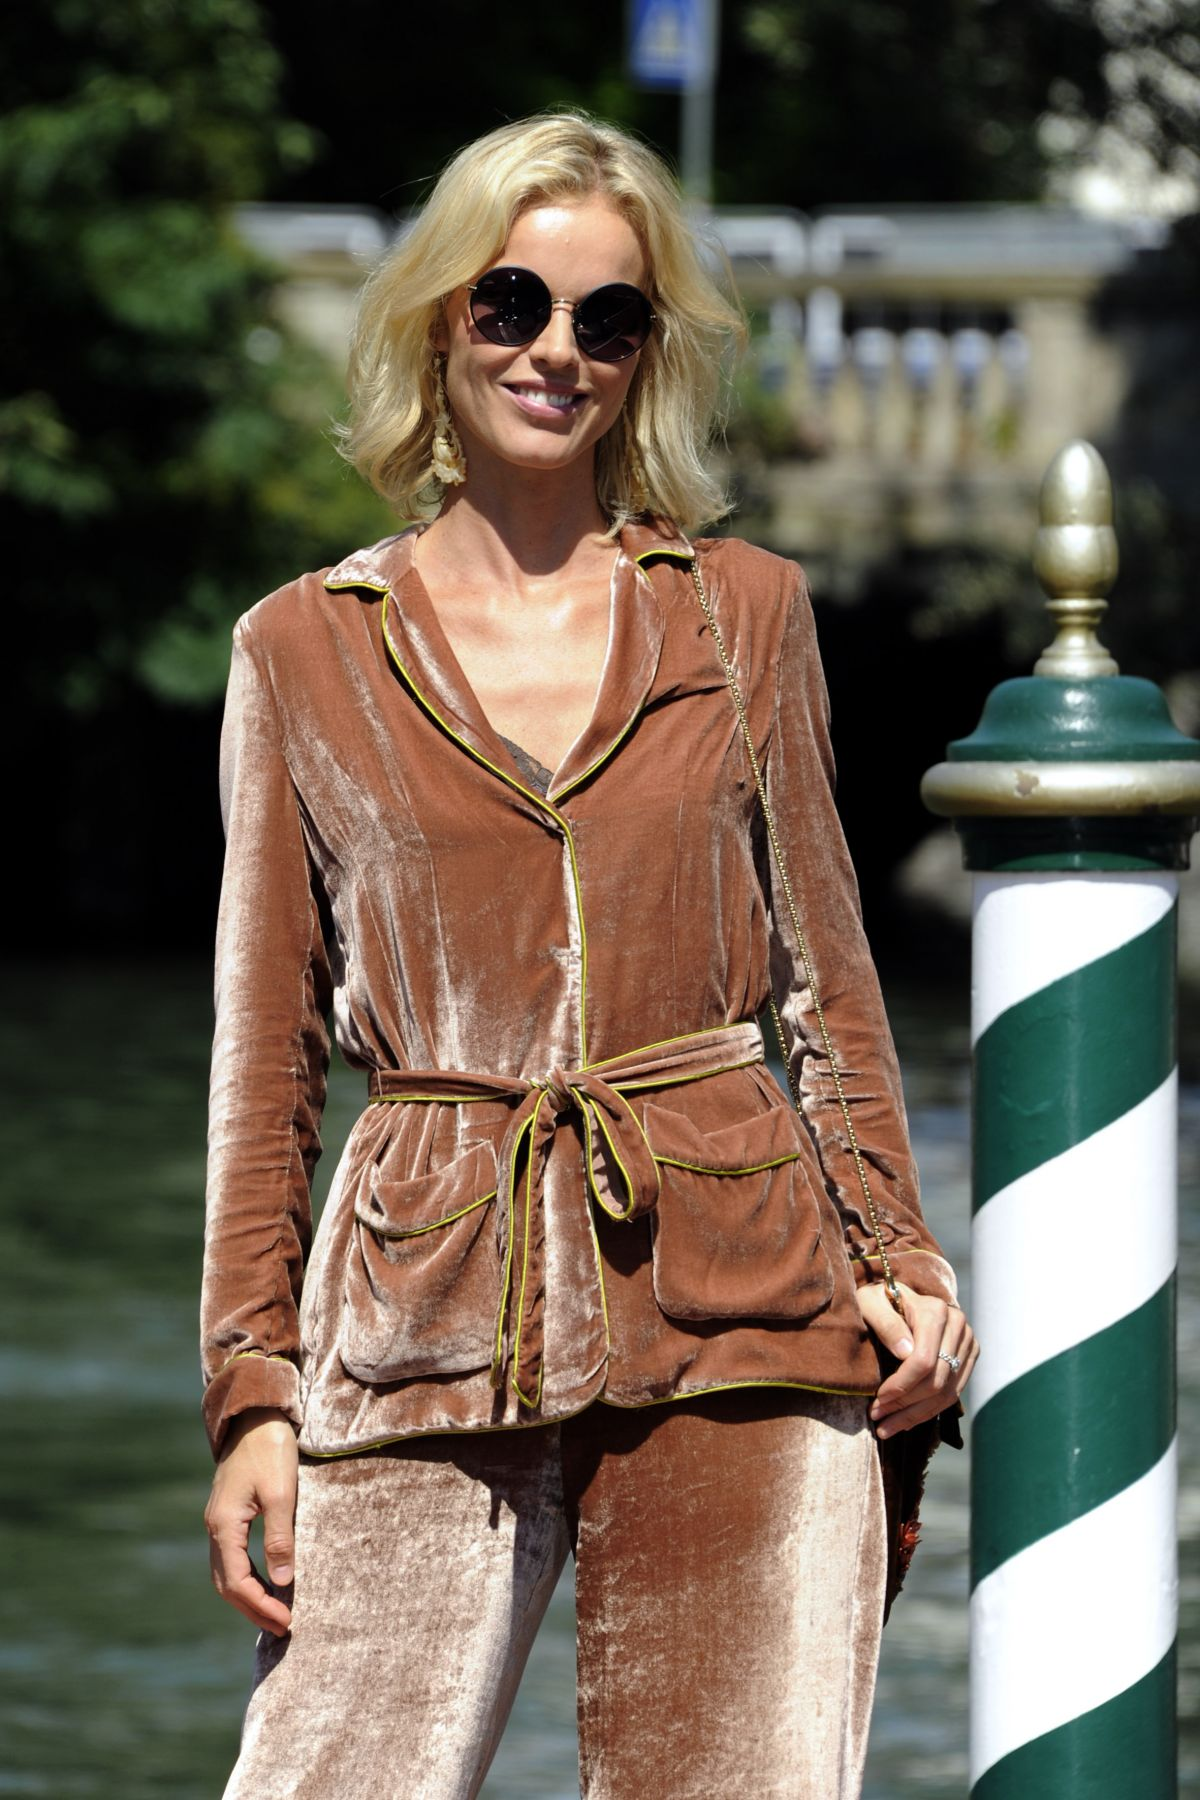 EVA HERZIGOVA Arrives in Venice 09/02/2016